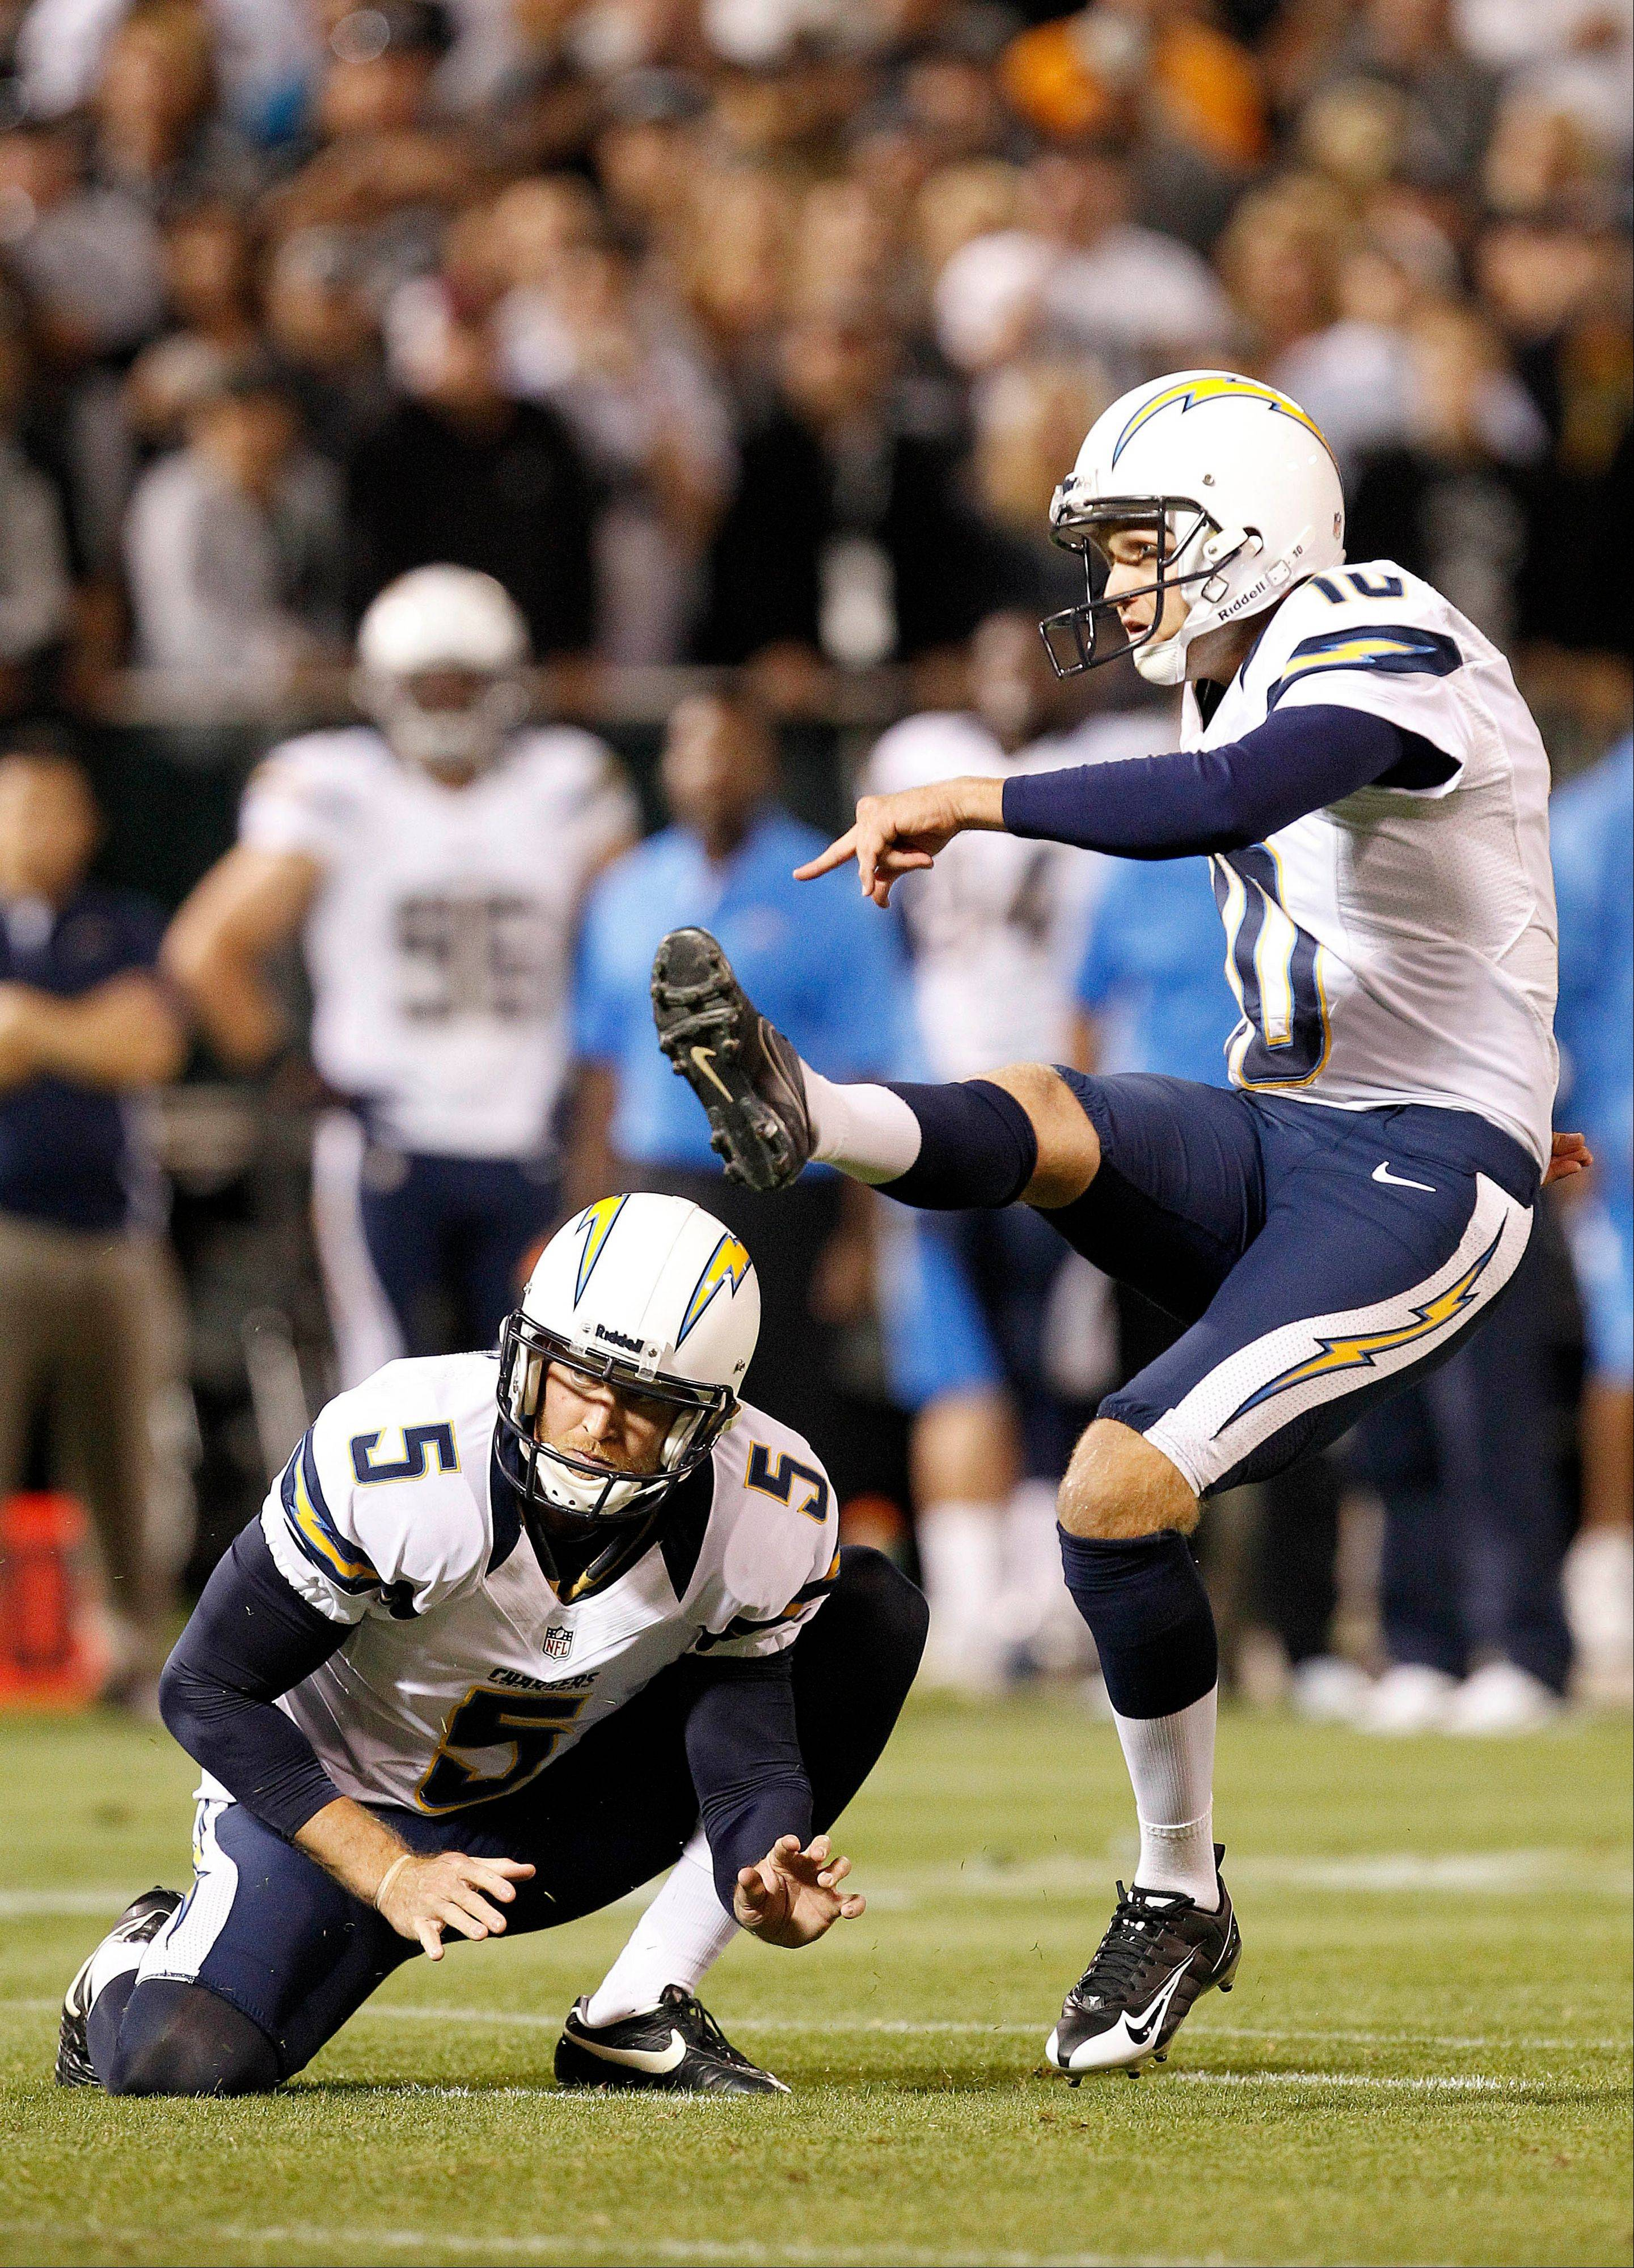 San Diego Chargers kicker Nate Kaeding nails a field goal from the hold of punter Mike Scifres on Sept. 10 against the Oakland Raiders.